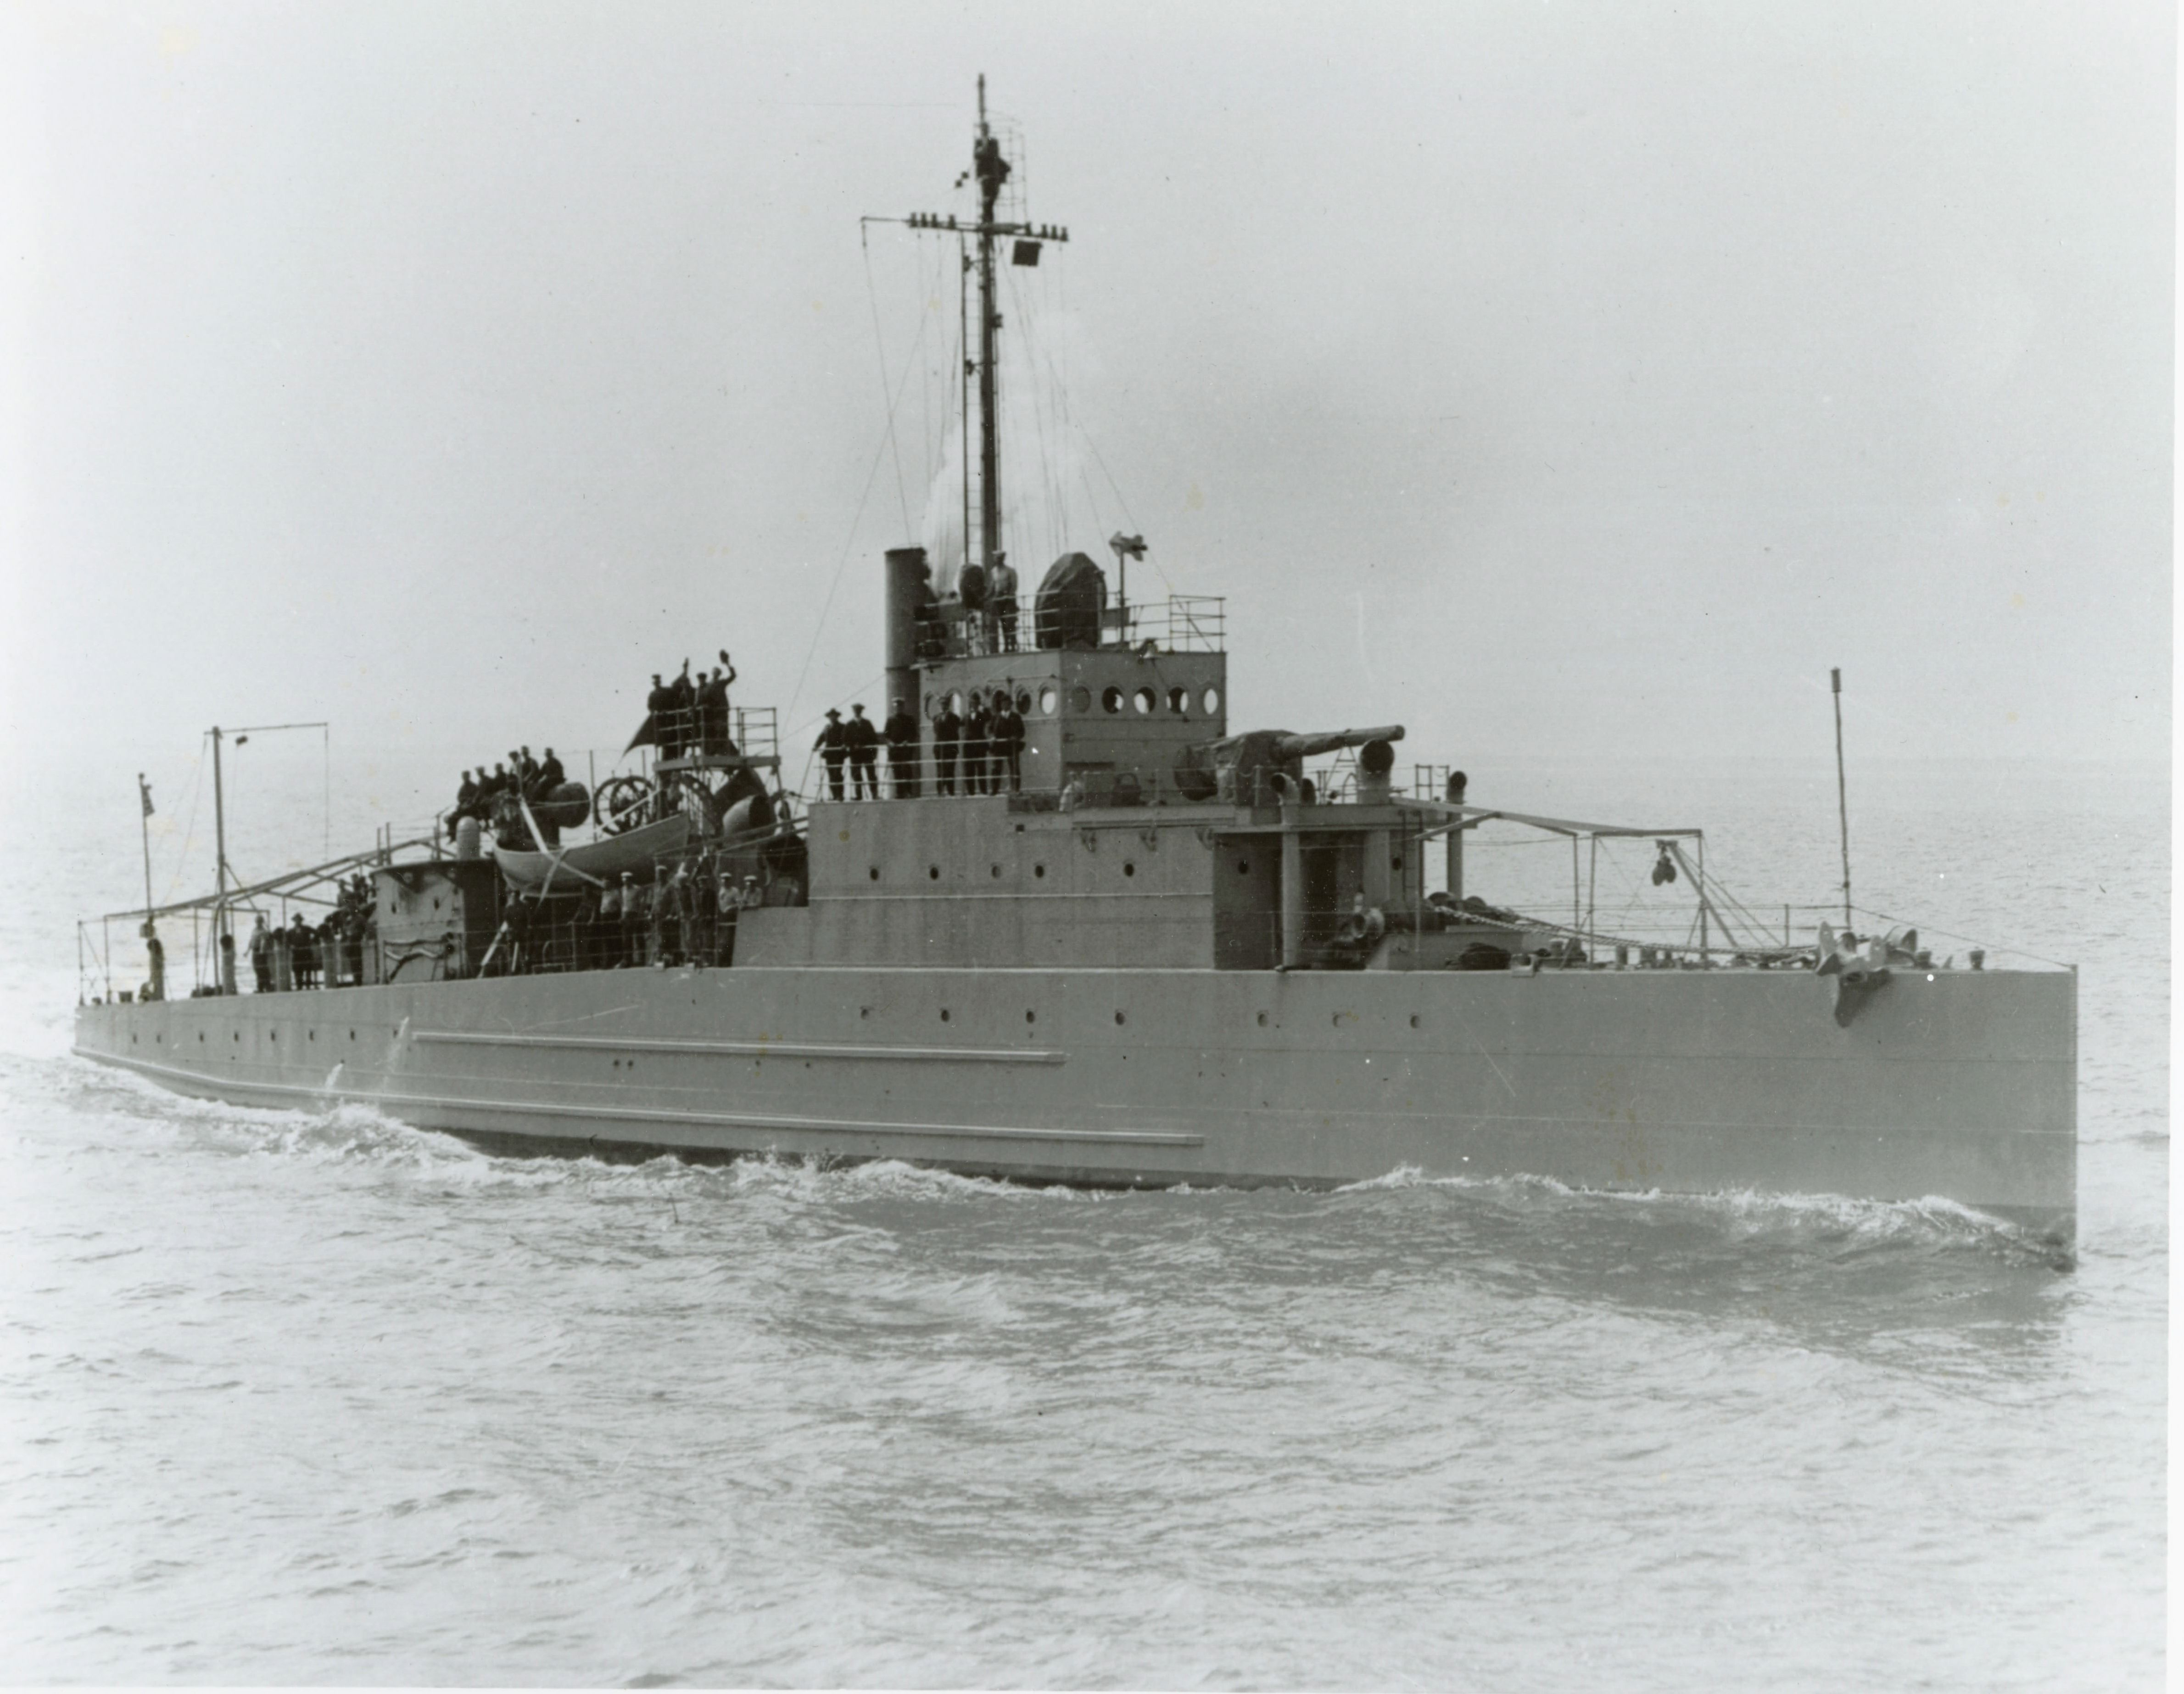 Sunk in the Final Days of WWII, a U.S. Patrol Boat Is Found Off the Coast of Maine